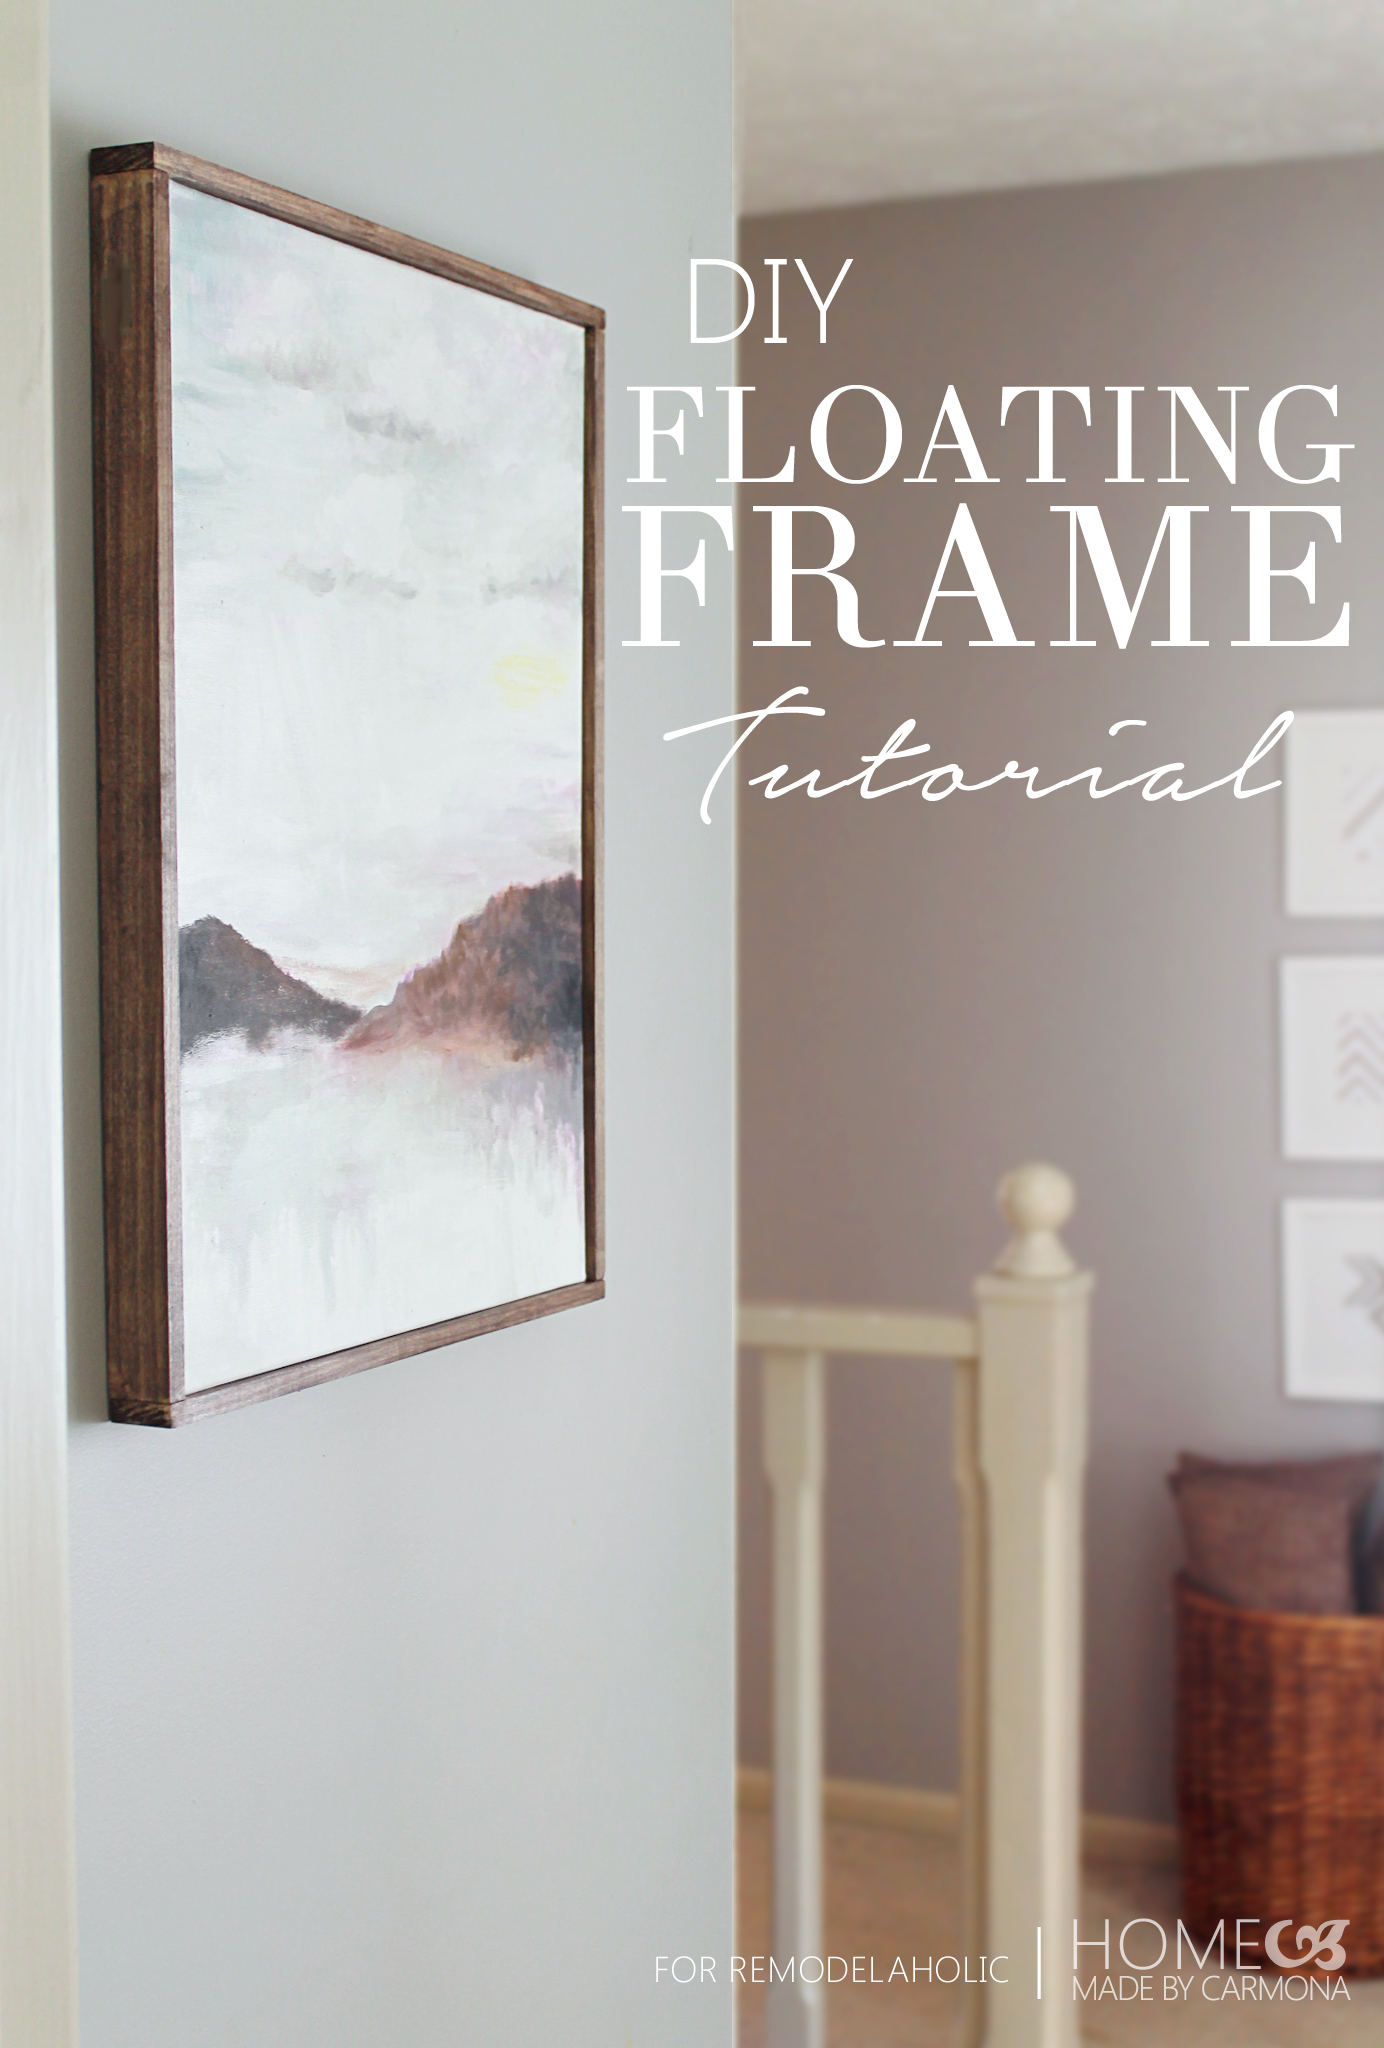 Remodelaholic | Tutorial: Chic Floating Frame for a Canvas